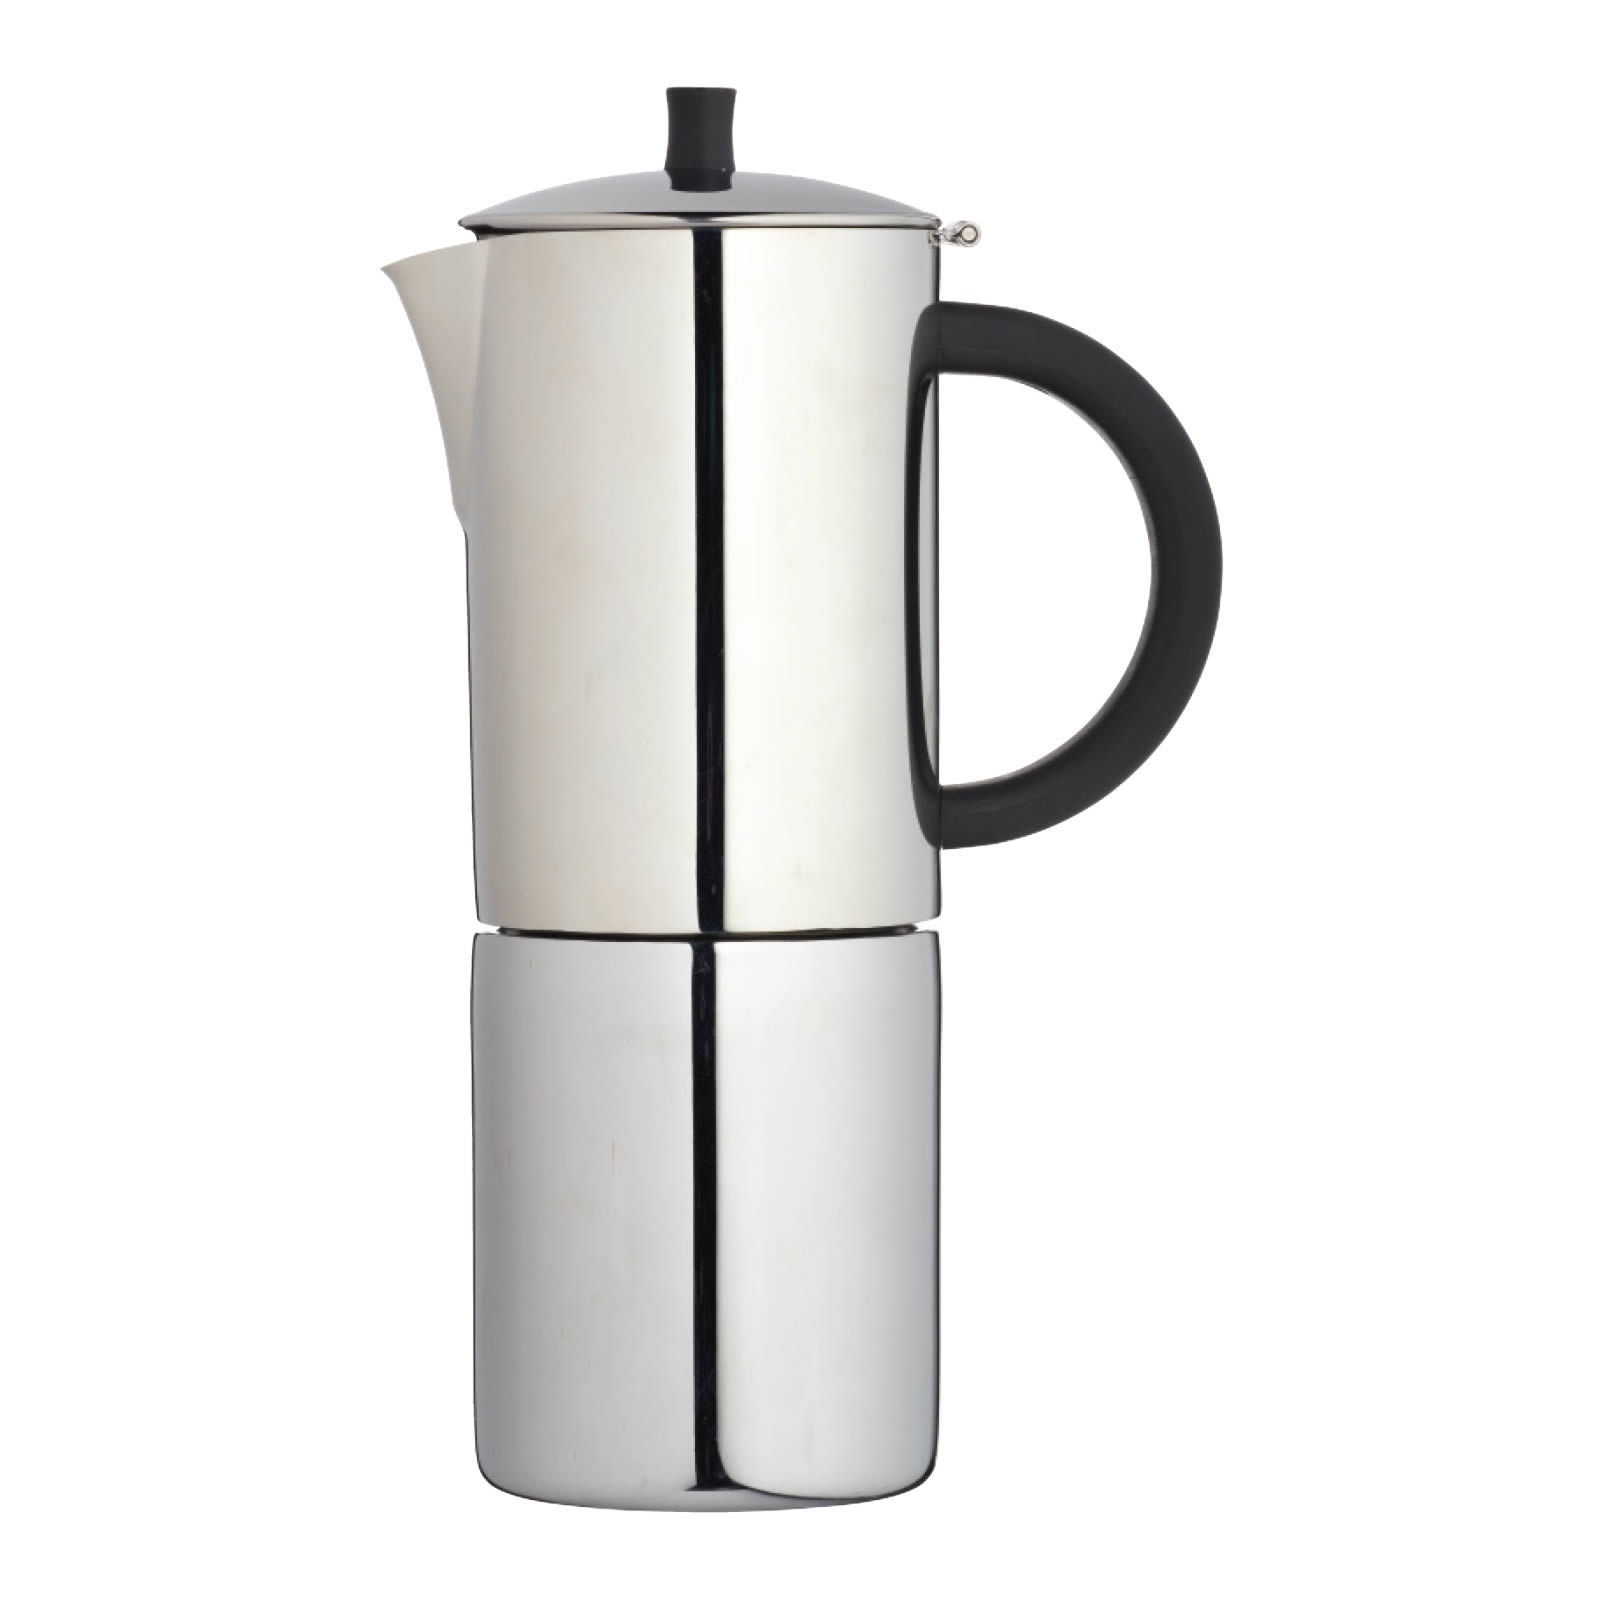 Le xpress stainless steel 10 cup expresso maker for Kitchen xpress overseas ltd contact number